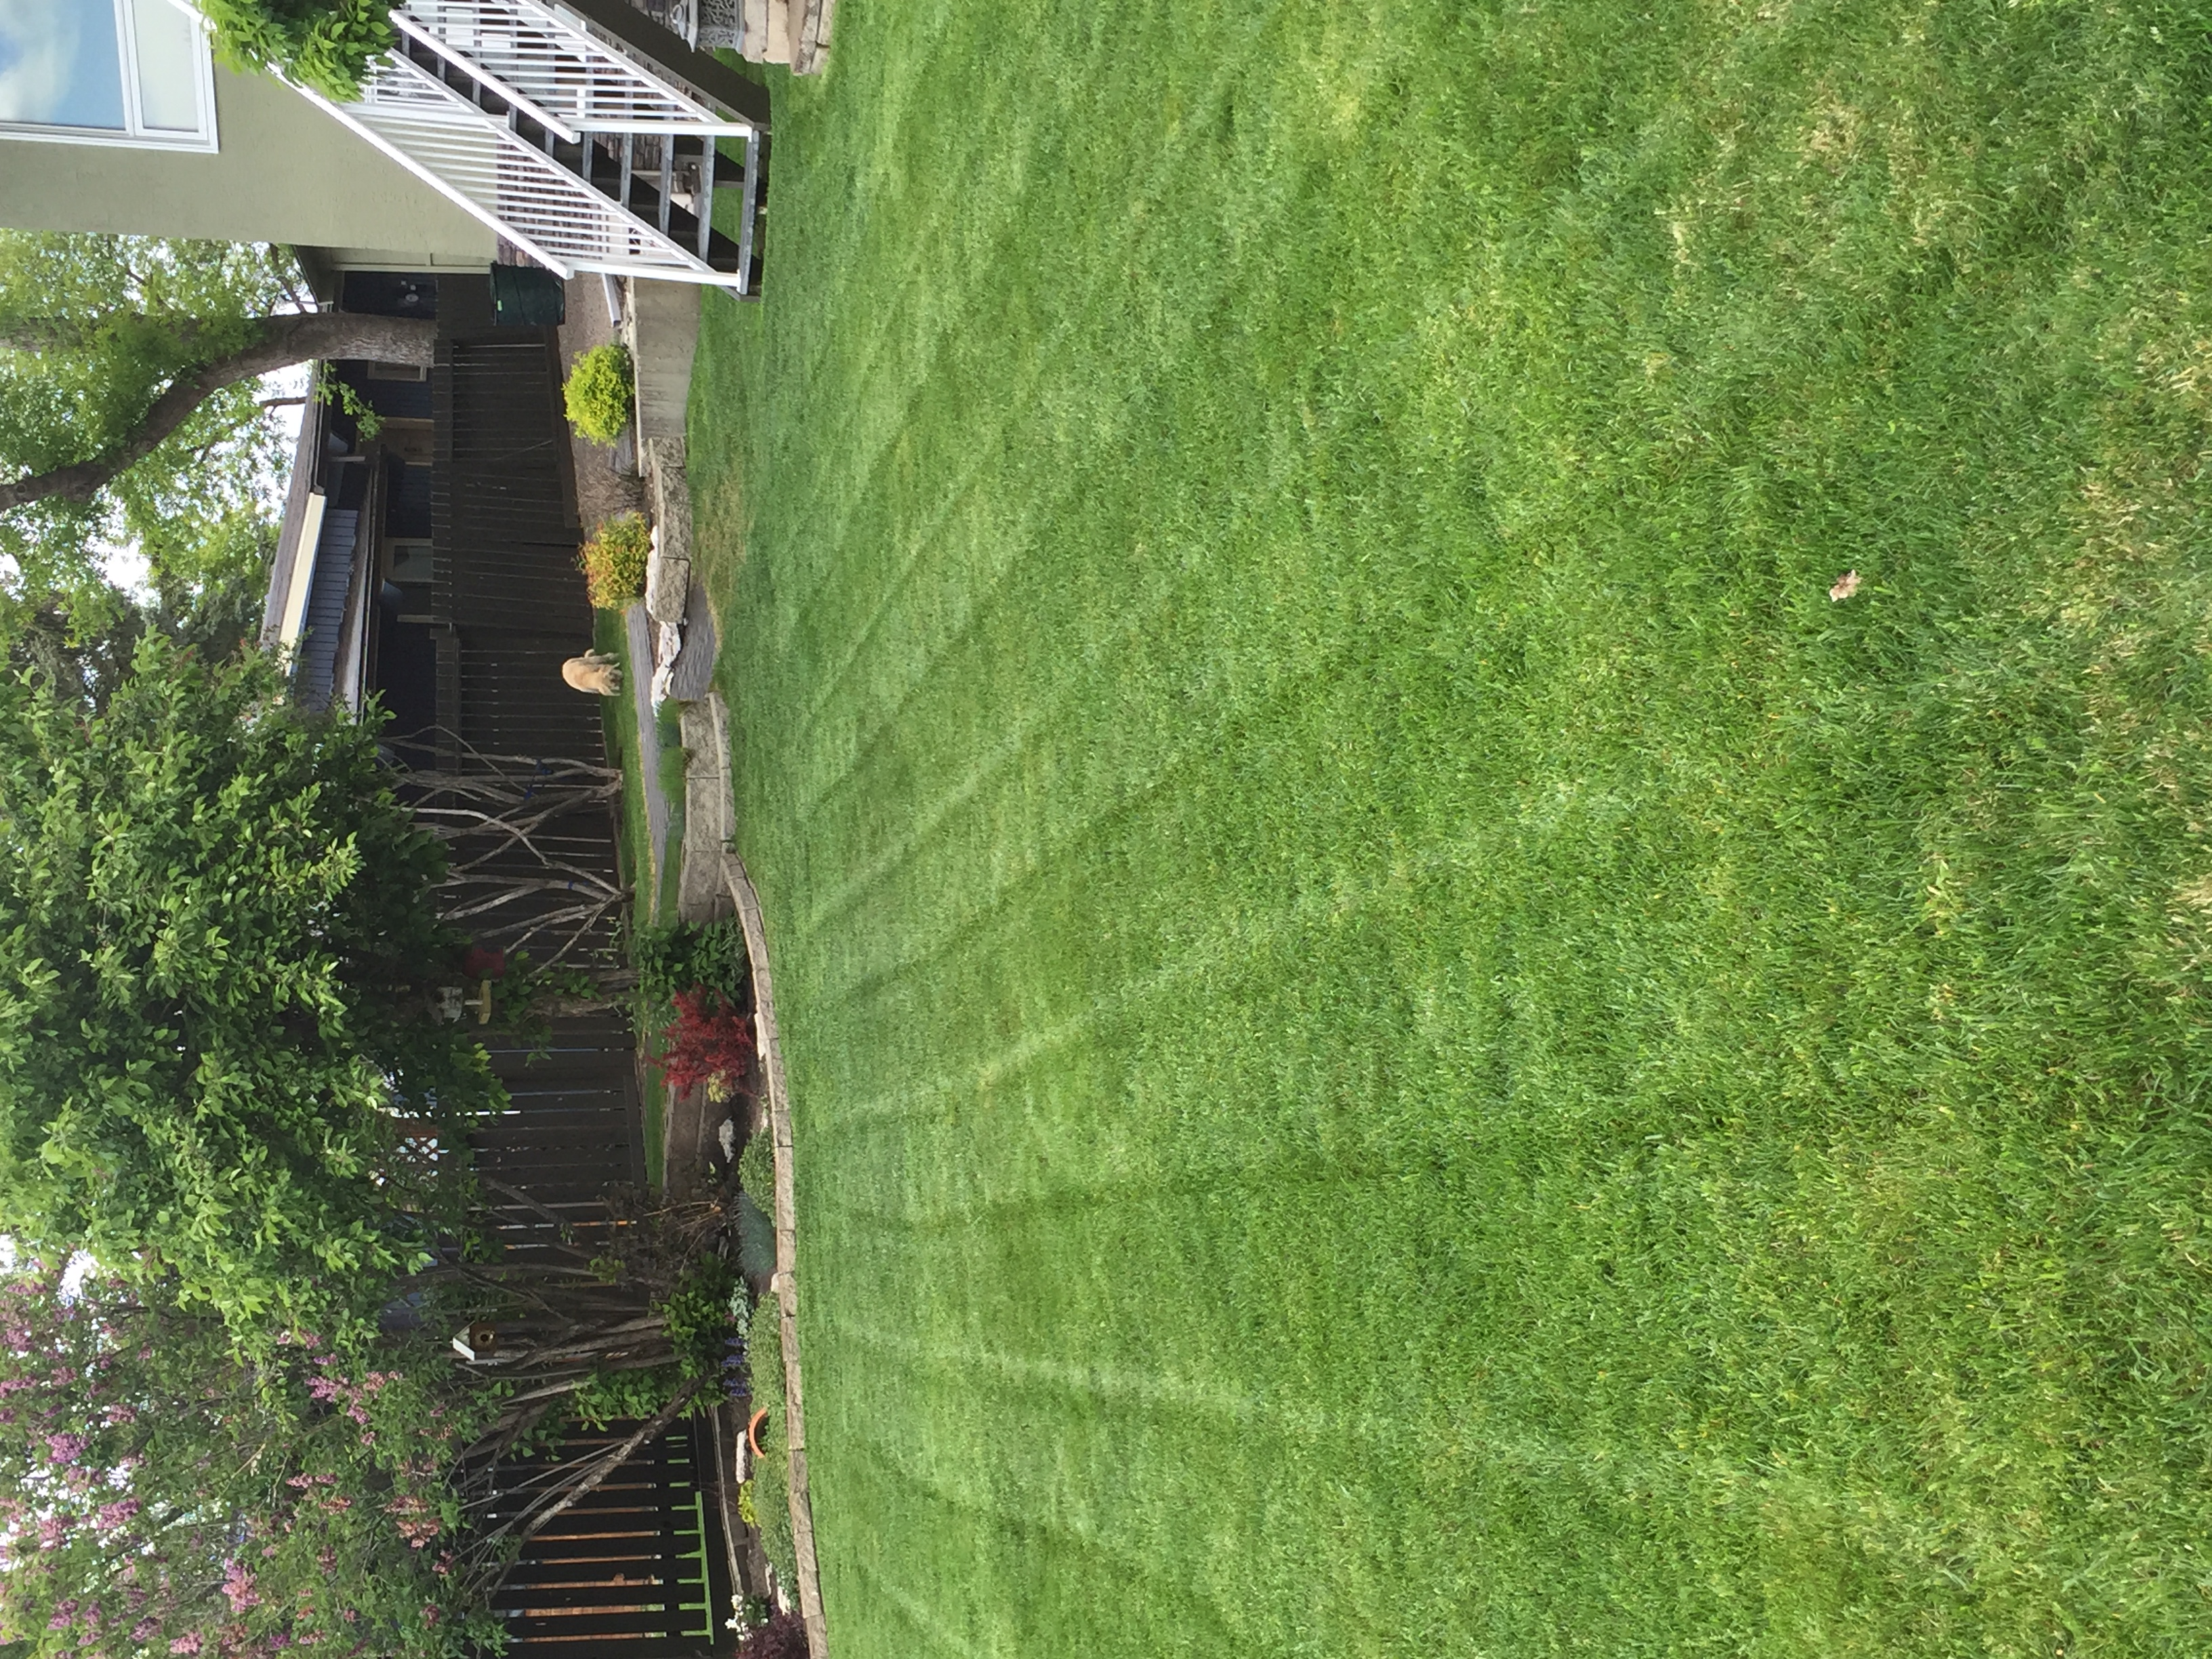 Residential lawn maintenance